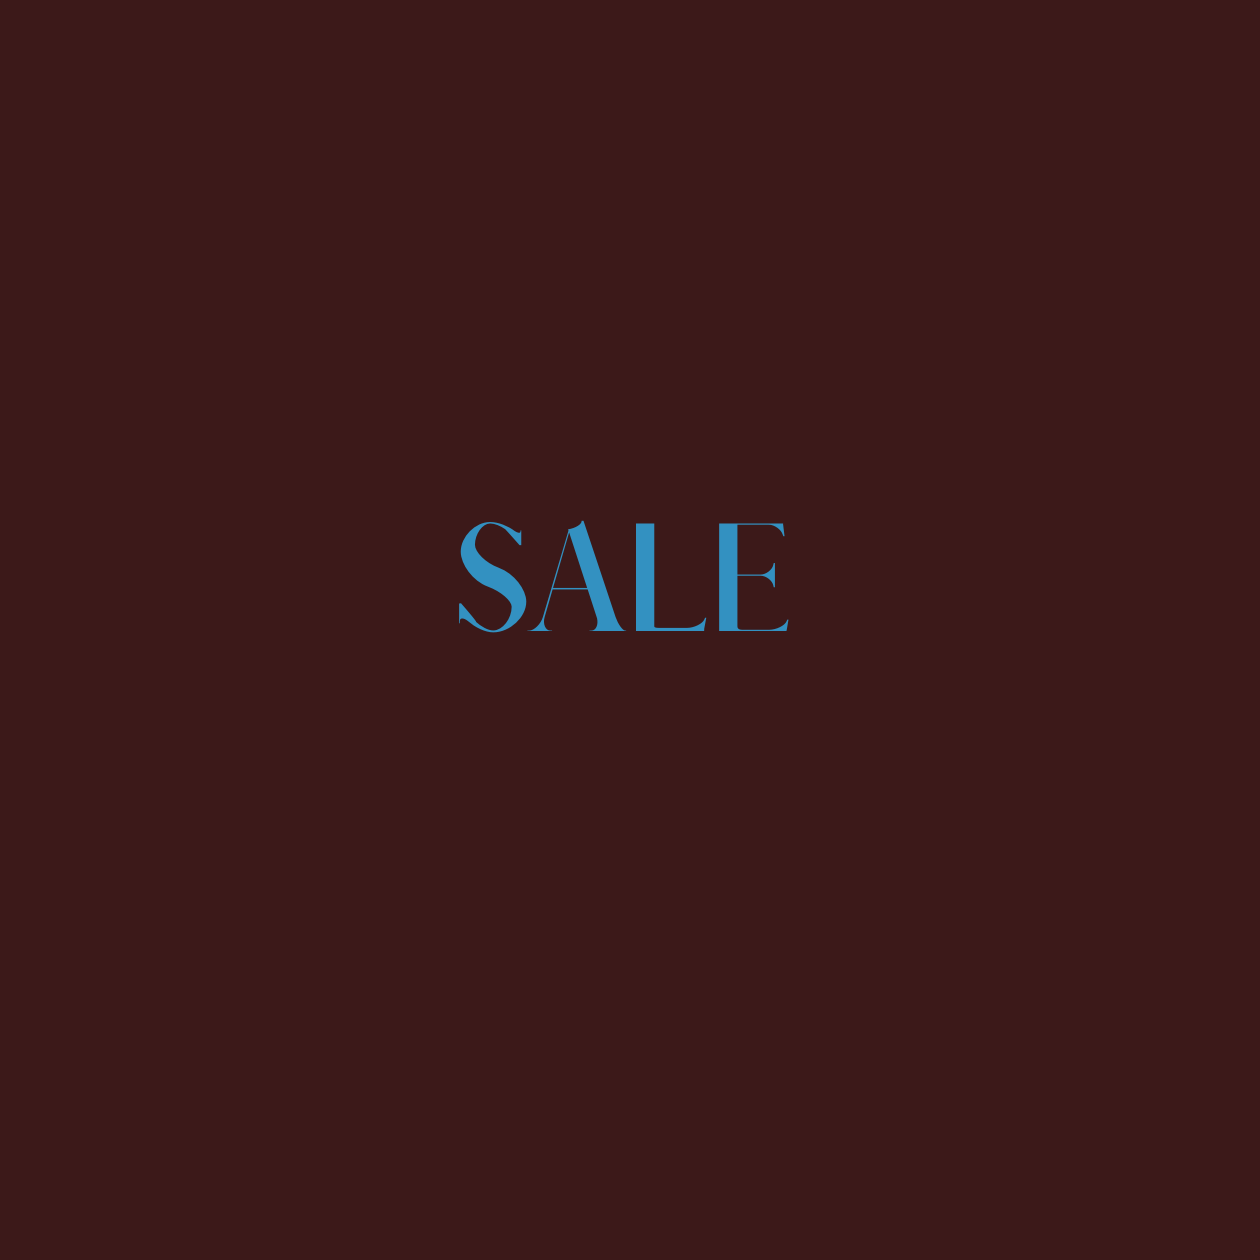 Sale Shoes